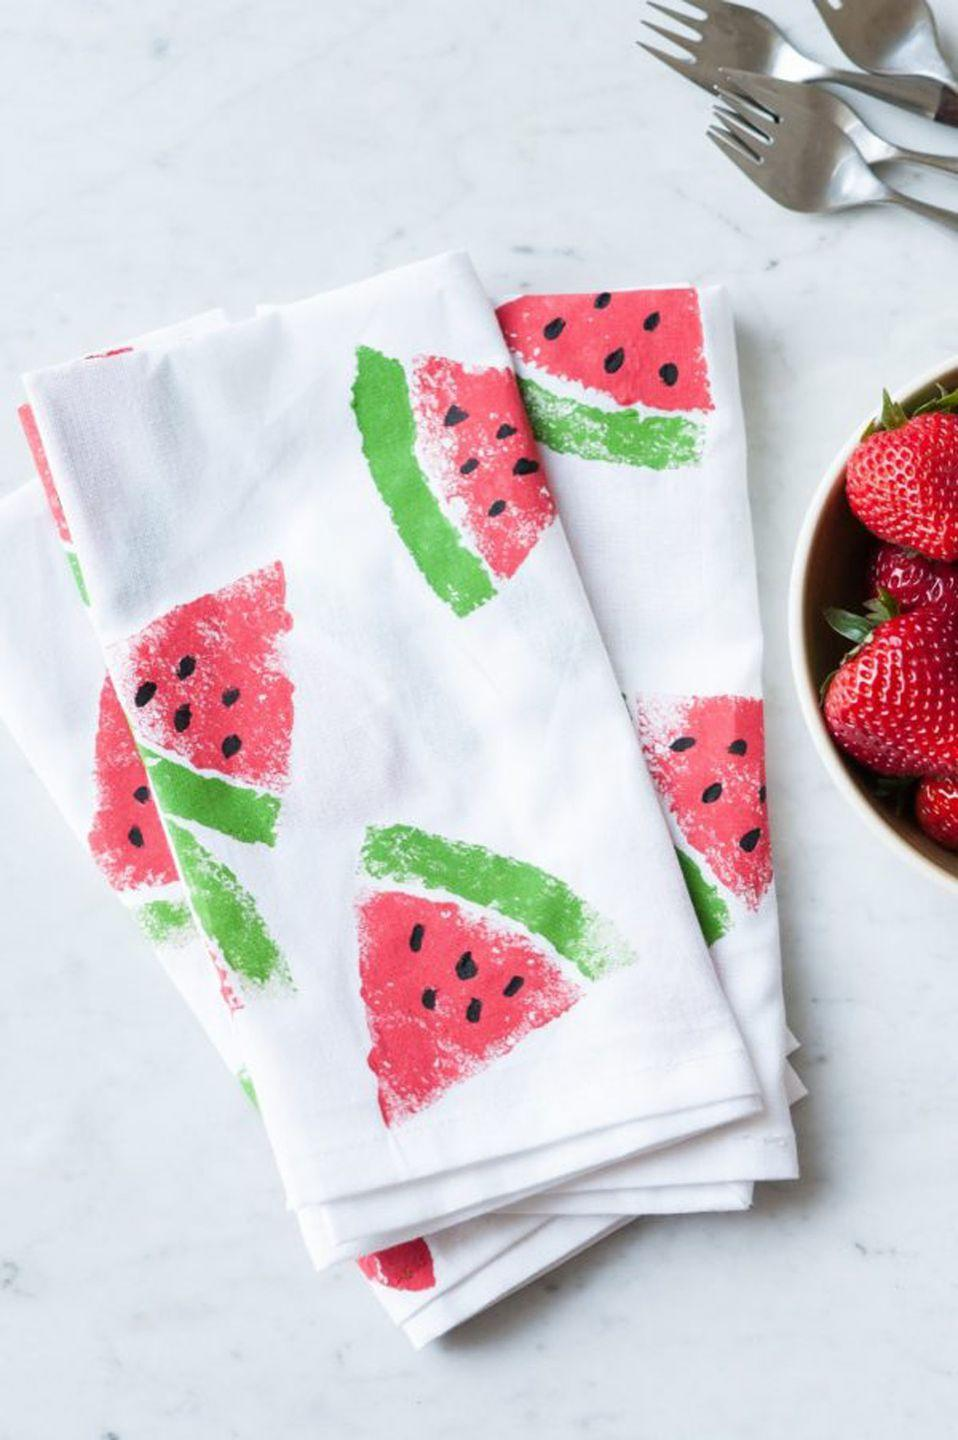 """<p>All it takes is a sponge and paint to make these pretty napkins you can use on Mother's Day.</p><p><strong>Get the tutorial at <a href=""""https://thesweetestoccasion.com/2015/07/diy-watermelon-print-napkins/"""" rel=""""nofollow noopener"""" target=""""_blank"""" data-ylk=""""slk:The Sweetest Occasion"""" class=""""link rapid-noclick-resp"""">The Sweetest Occasion</a>.</strong></p><p><strong>What you'll need: </strong><em>tea towels (</em><em><a href=""""https://www.amazon.com/Royal-12-Pack-Flour-Sack-Towels/dp/B074GPNG15"""" rel=""""nofollow noopener"""" target=""""_blank"""" data-ylk=""""slk:$18 for 12-pack, amazon.com"""" class=""""link rapid-noclick-resp"""">$18 for 12-pack, amazon.com</a>); sponge ($7 for 3-pack, <a href=""""https://www.amazon.com/Libman-Count-Anti-Bacterial-Sponge-Pack/dp/B00GWVCBG2"""" rel=""""nofollow noopener"""" target=""""_blank"""" data-ylk=""""slk:amazon.com"""" class=""""link rapid-noclick-resp"""">amazon.com</a>)</em></p>"""